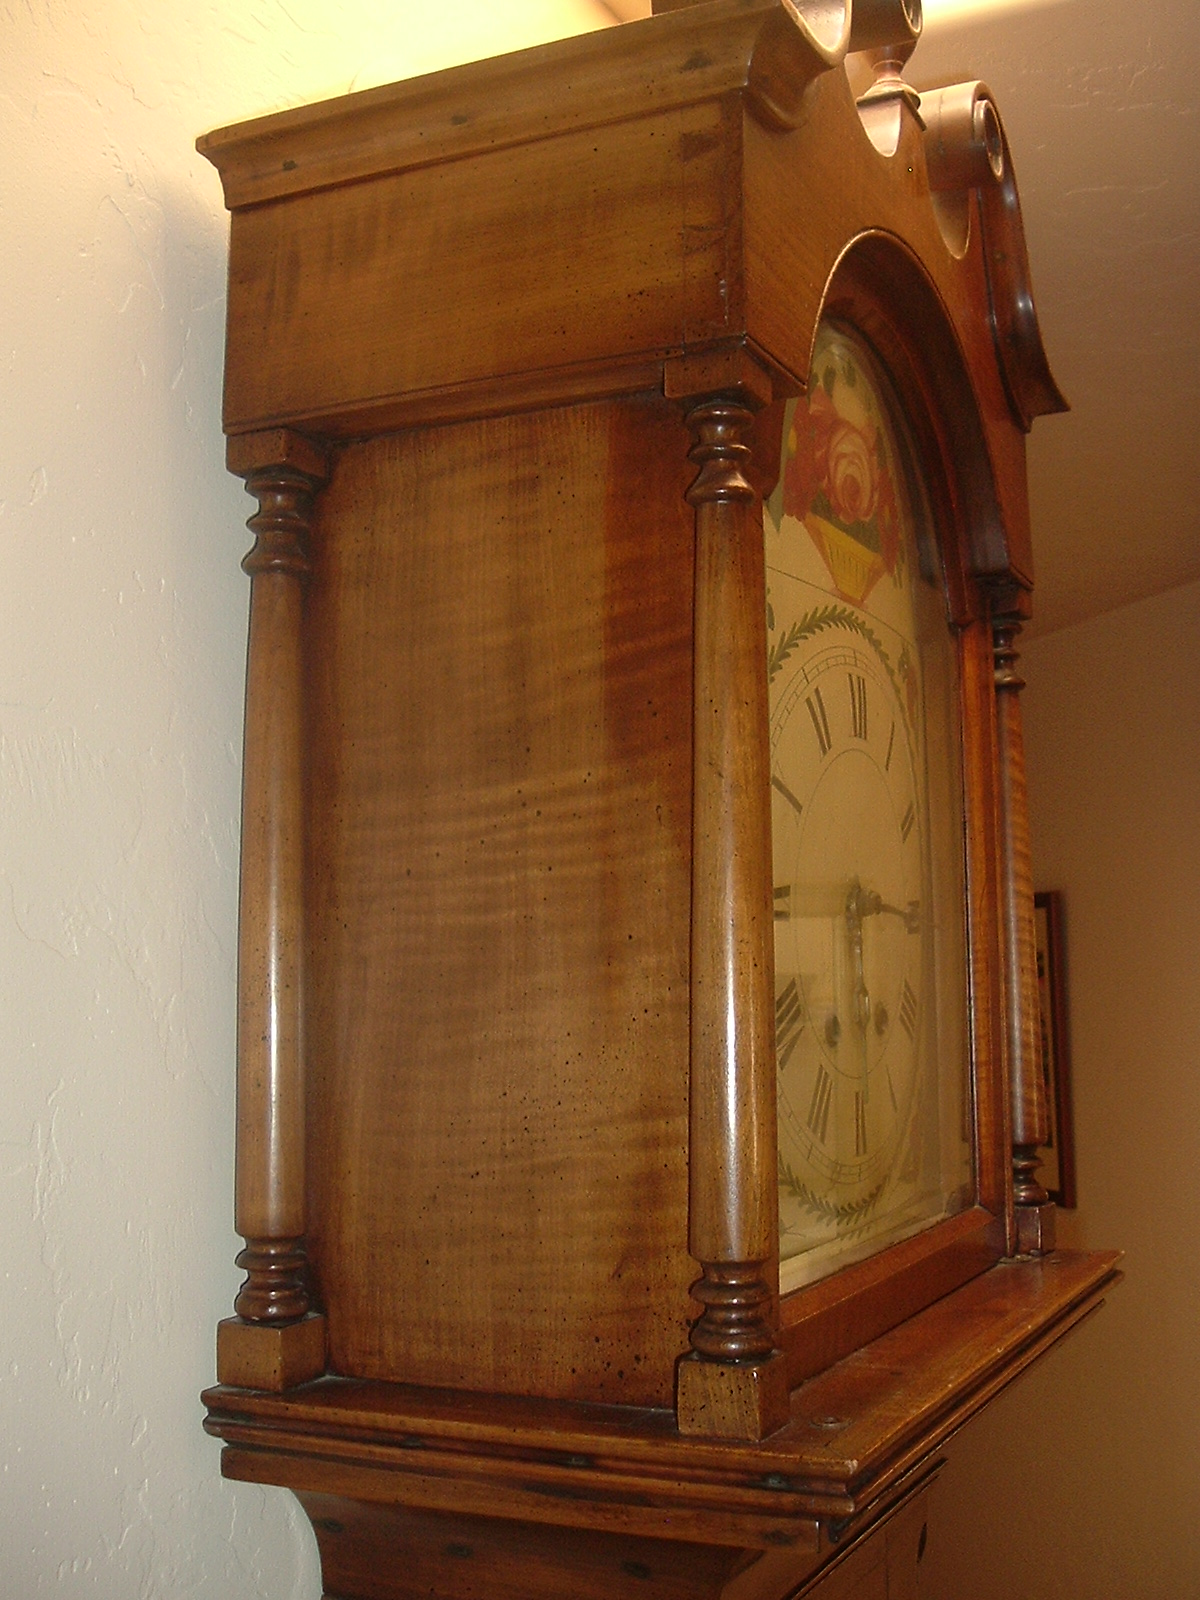 Antique Grandfather Clock - Help to Identify - The eBay ...